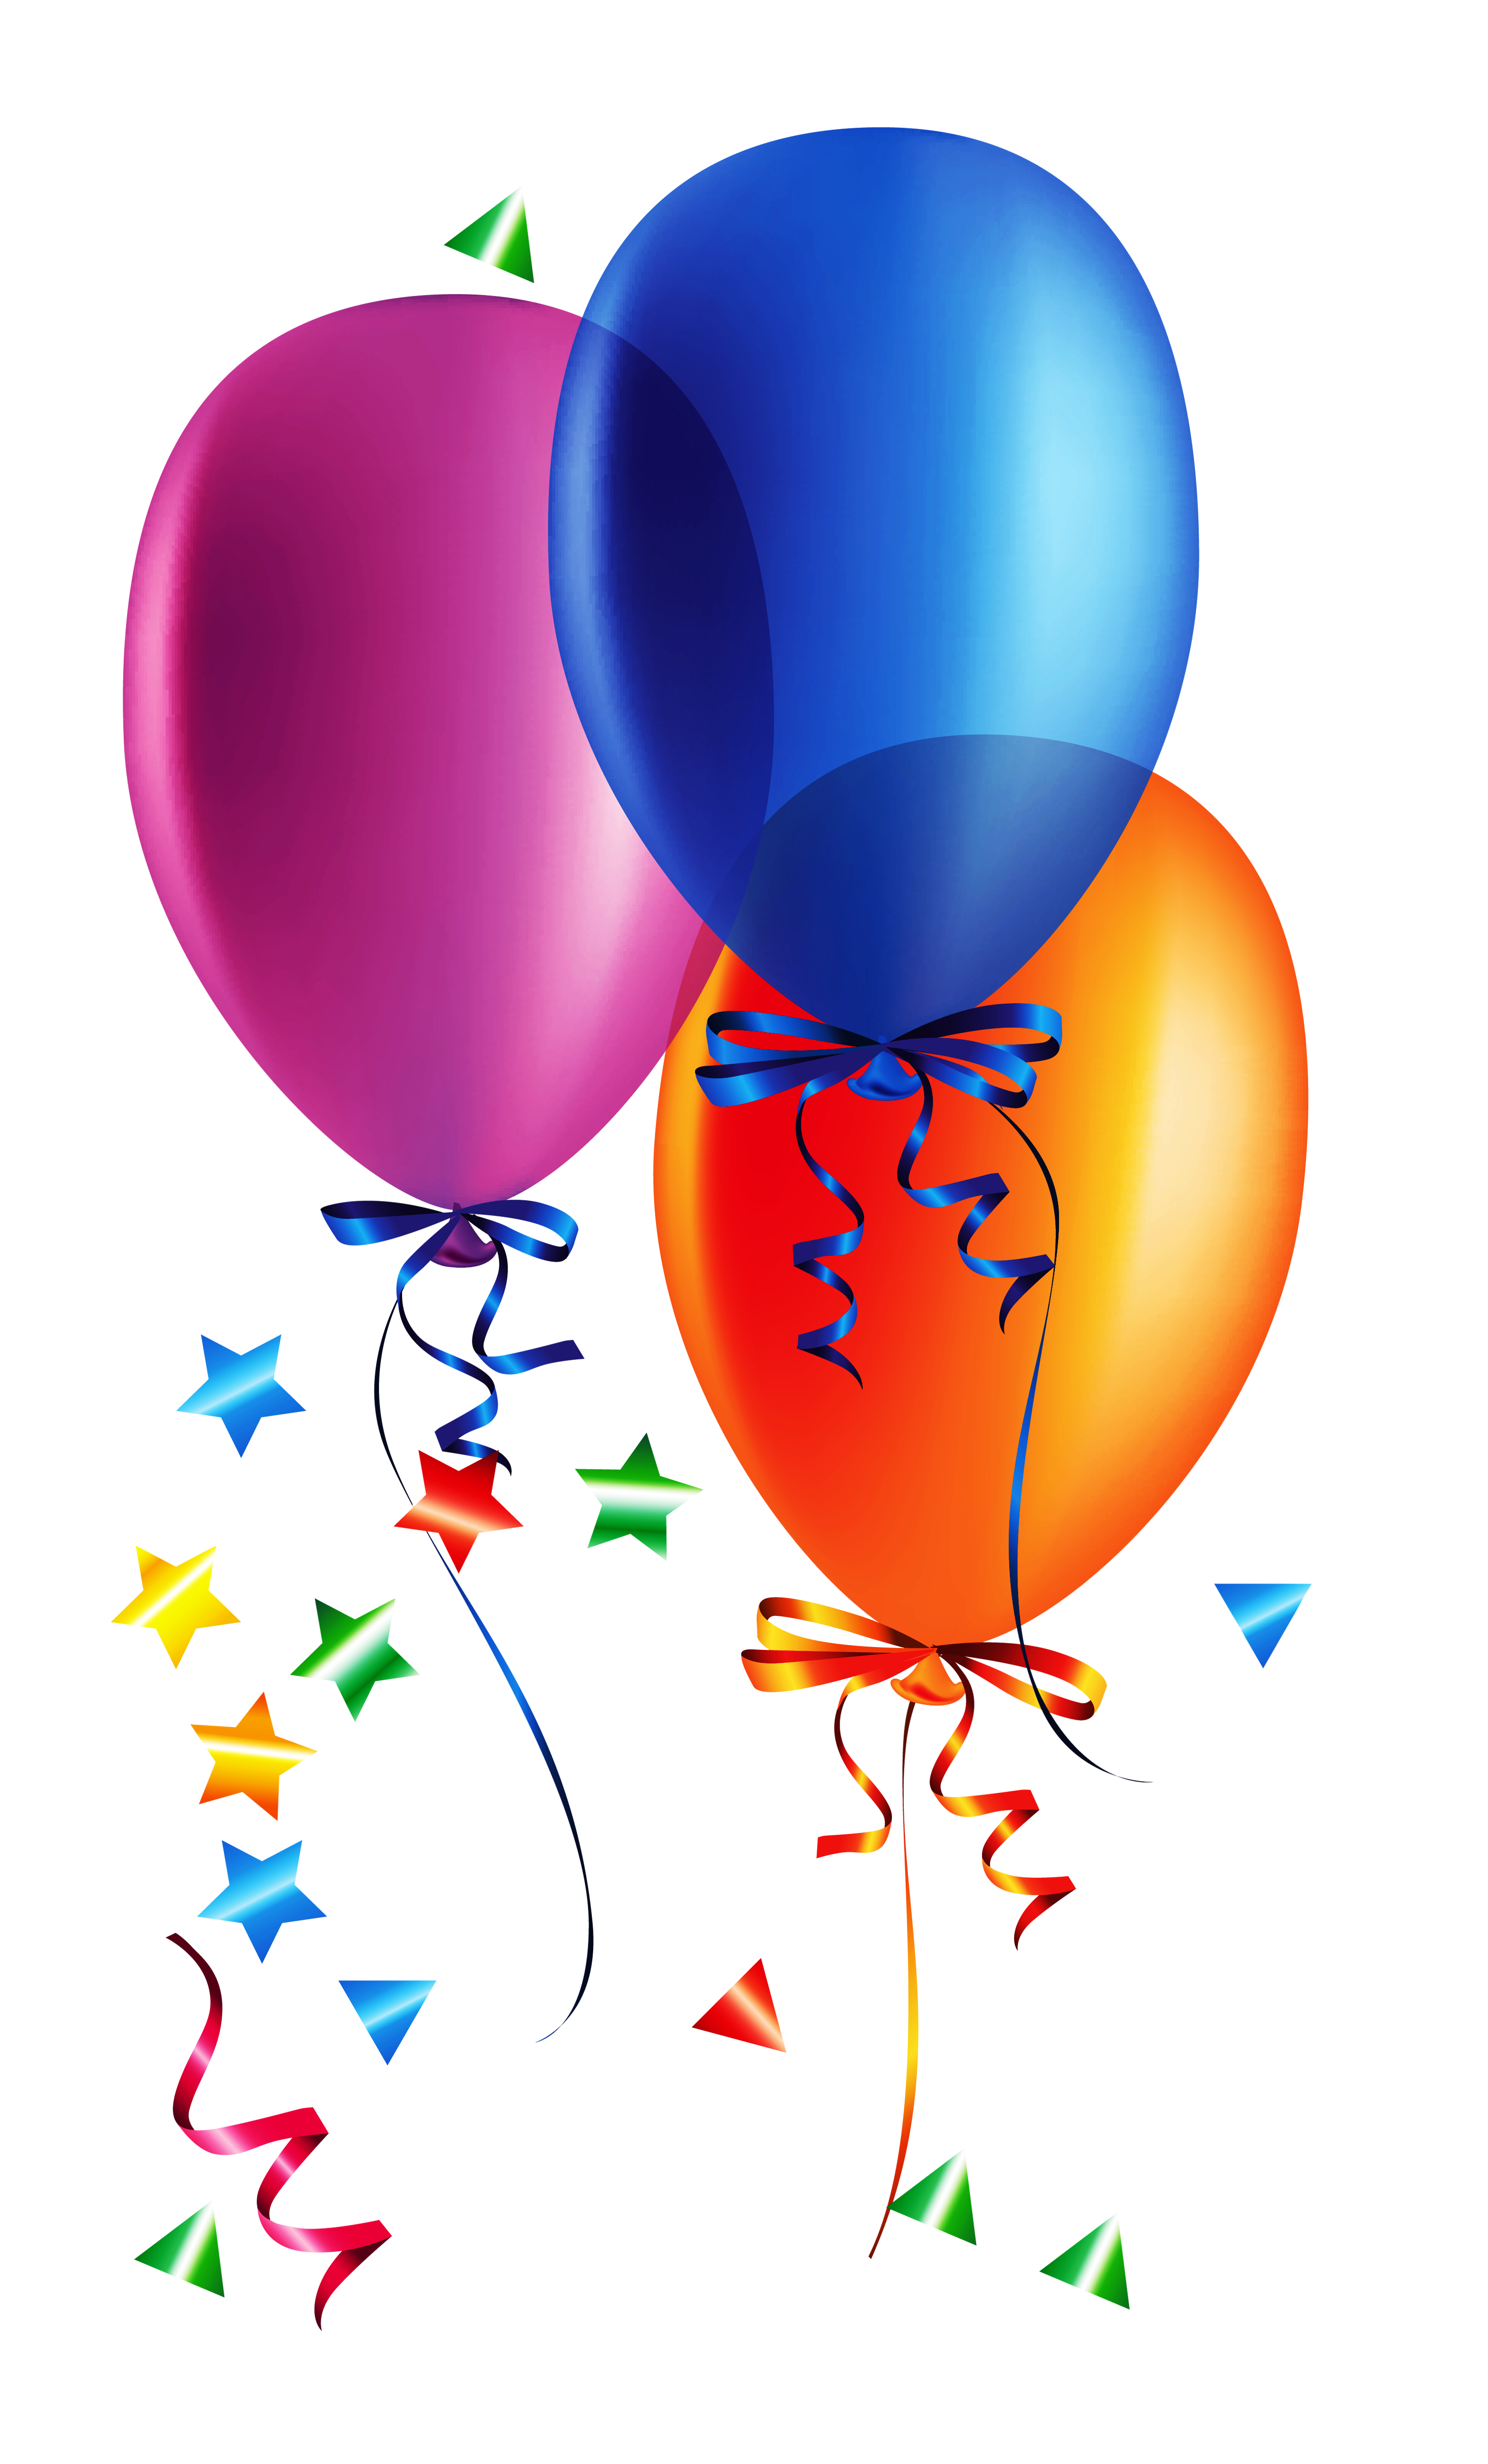 Microsoft Balloons Clipart - Clipart Kid